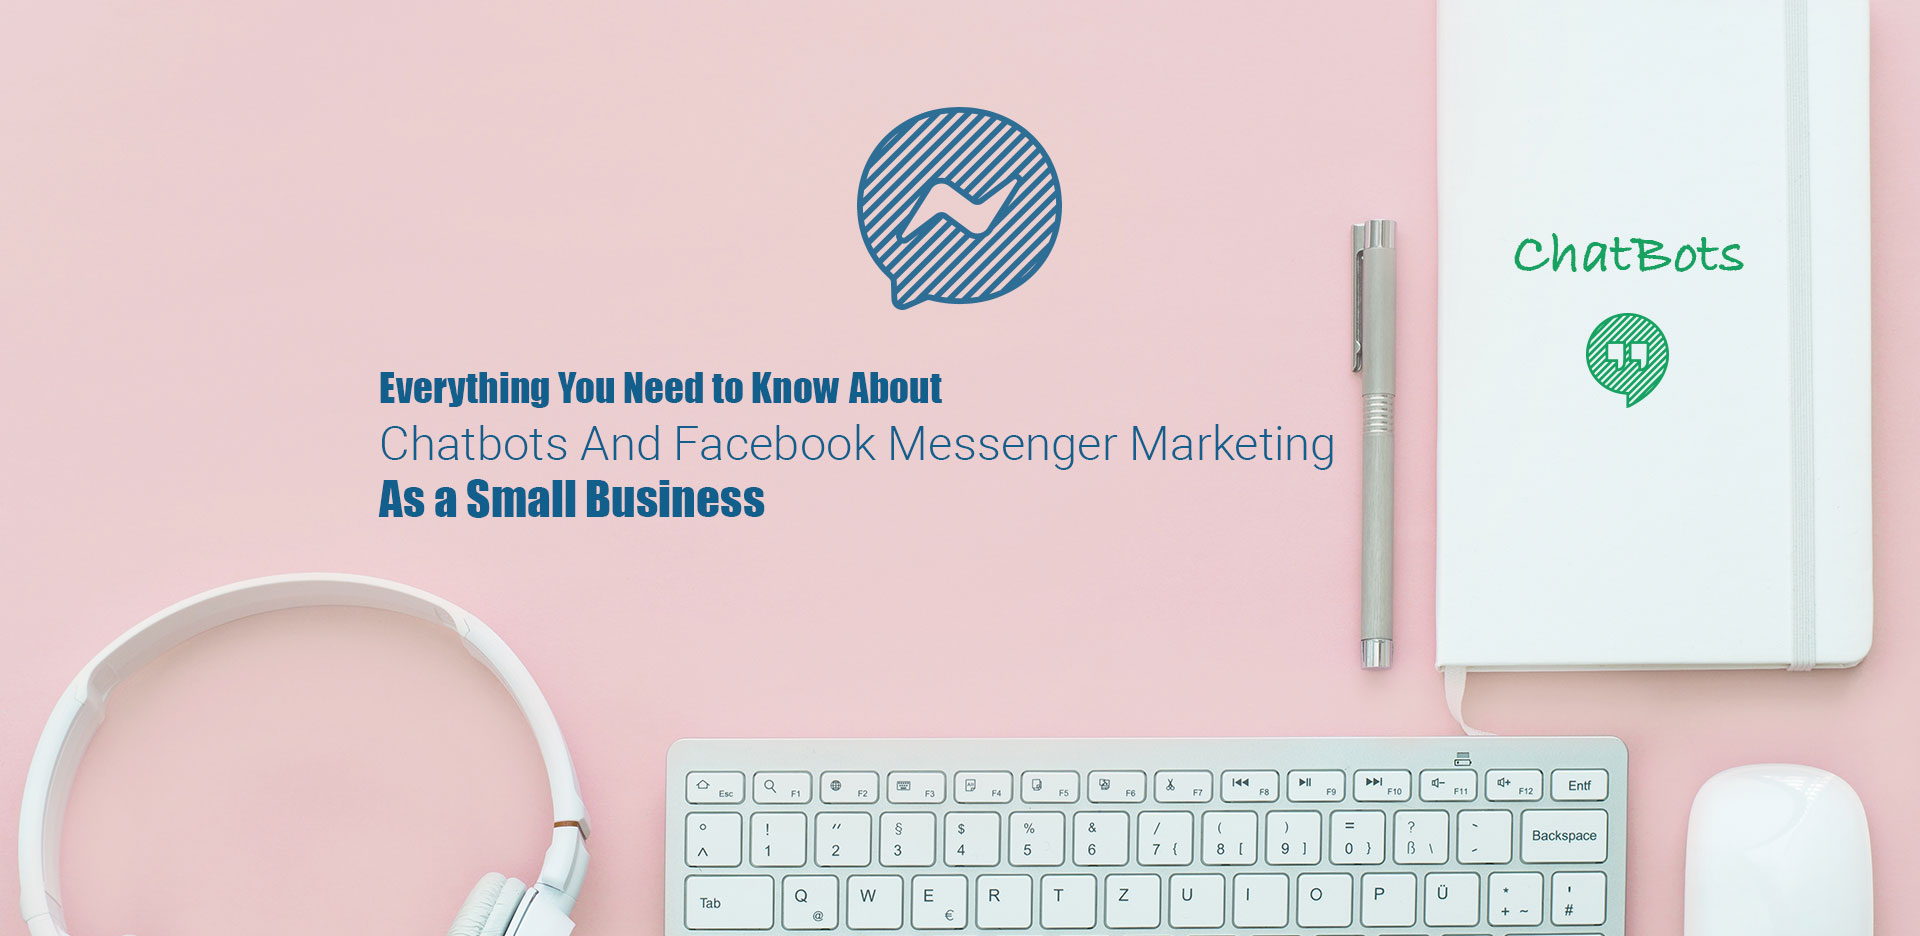 Everything You Need to Know About Chatbots And Facebook Messenger Marketing As a Small Business